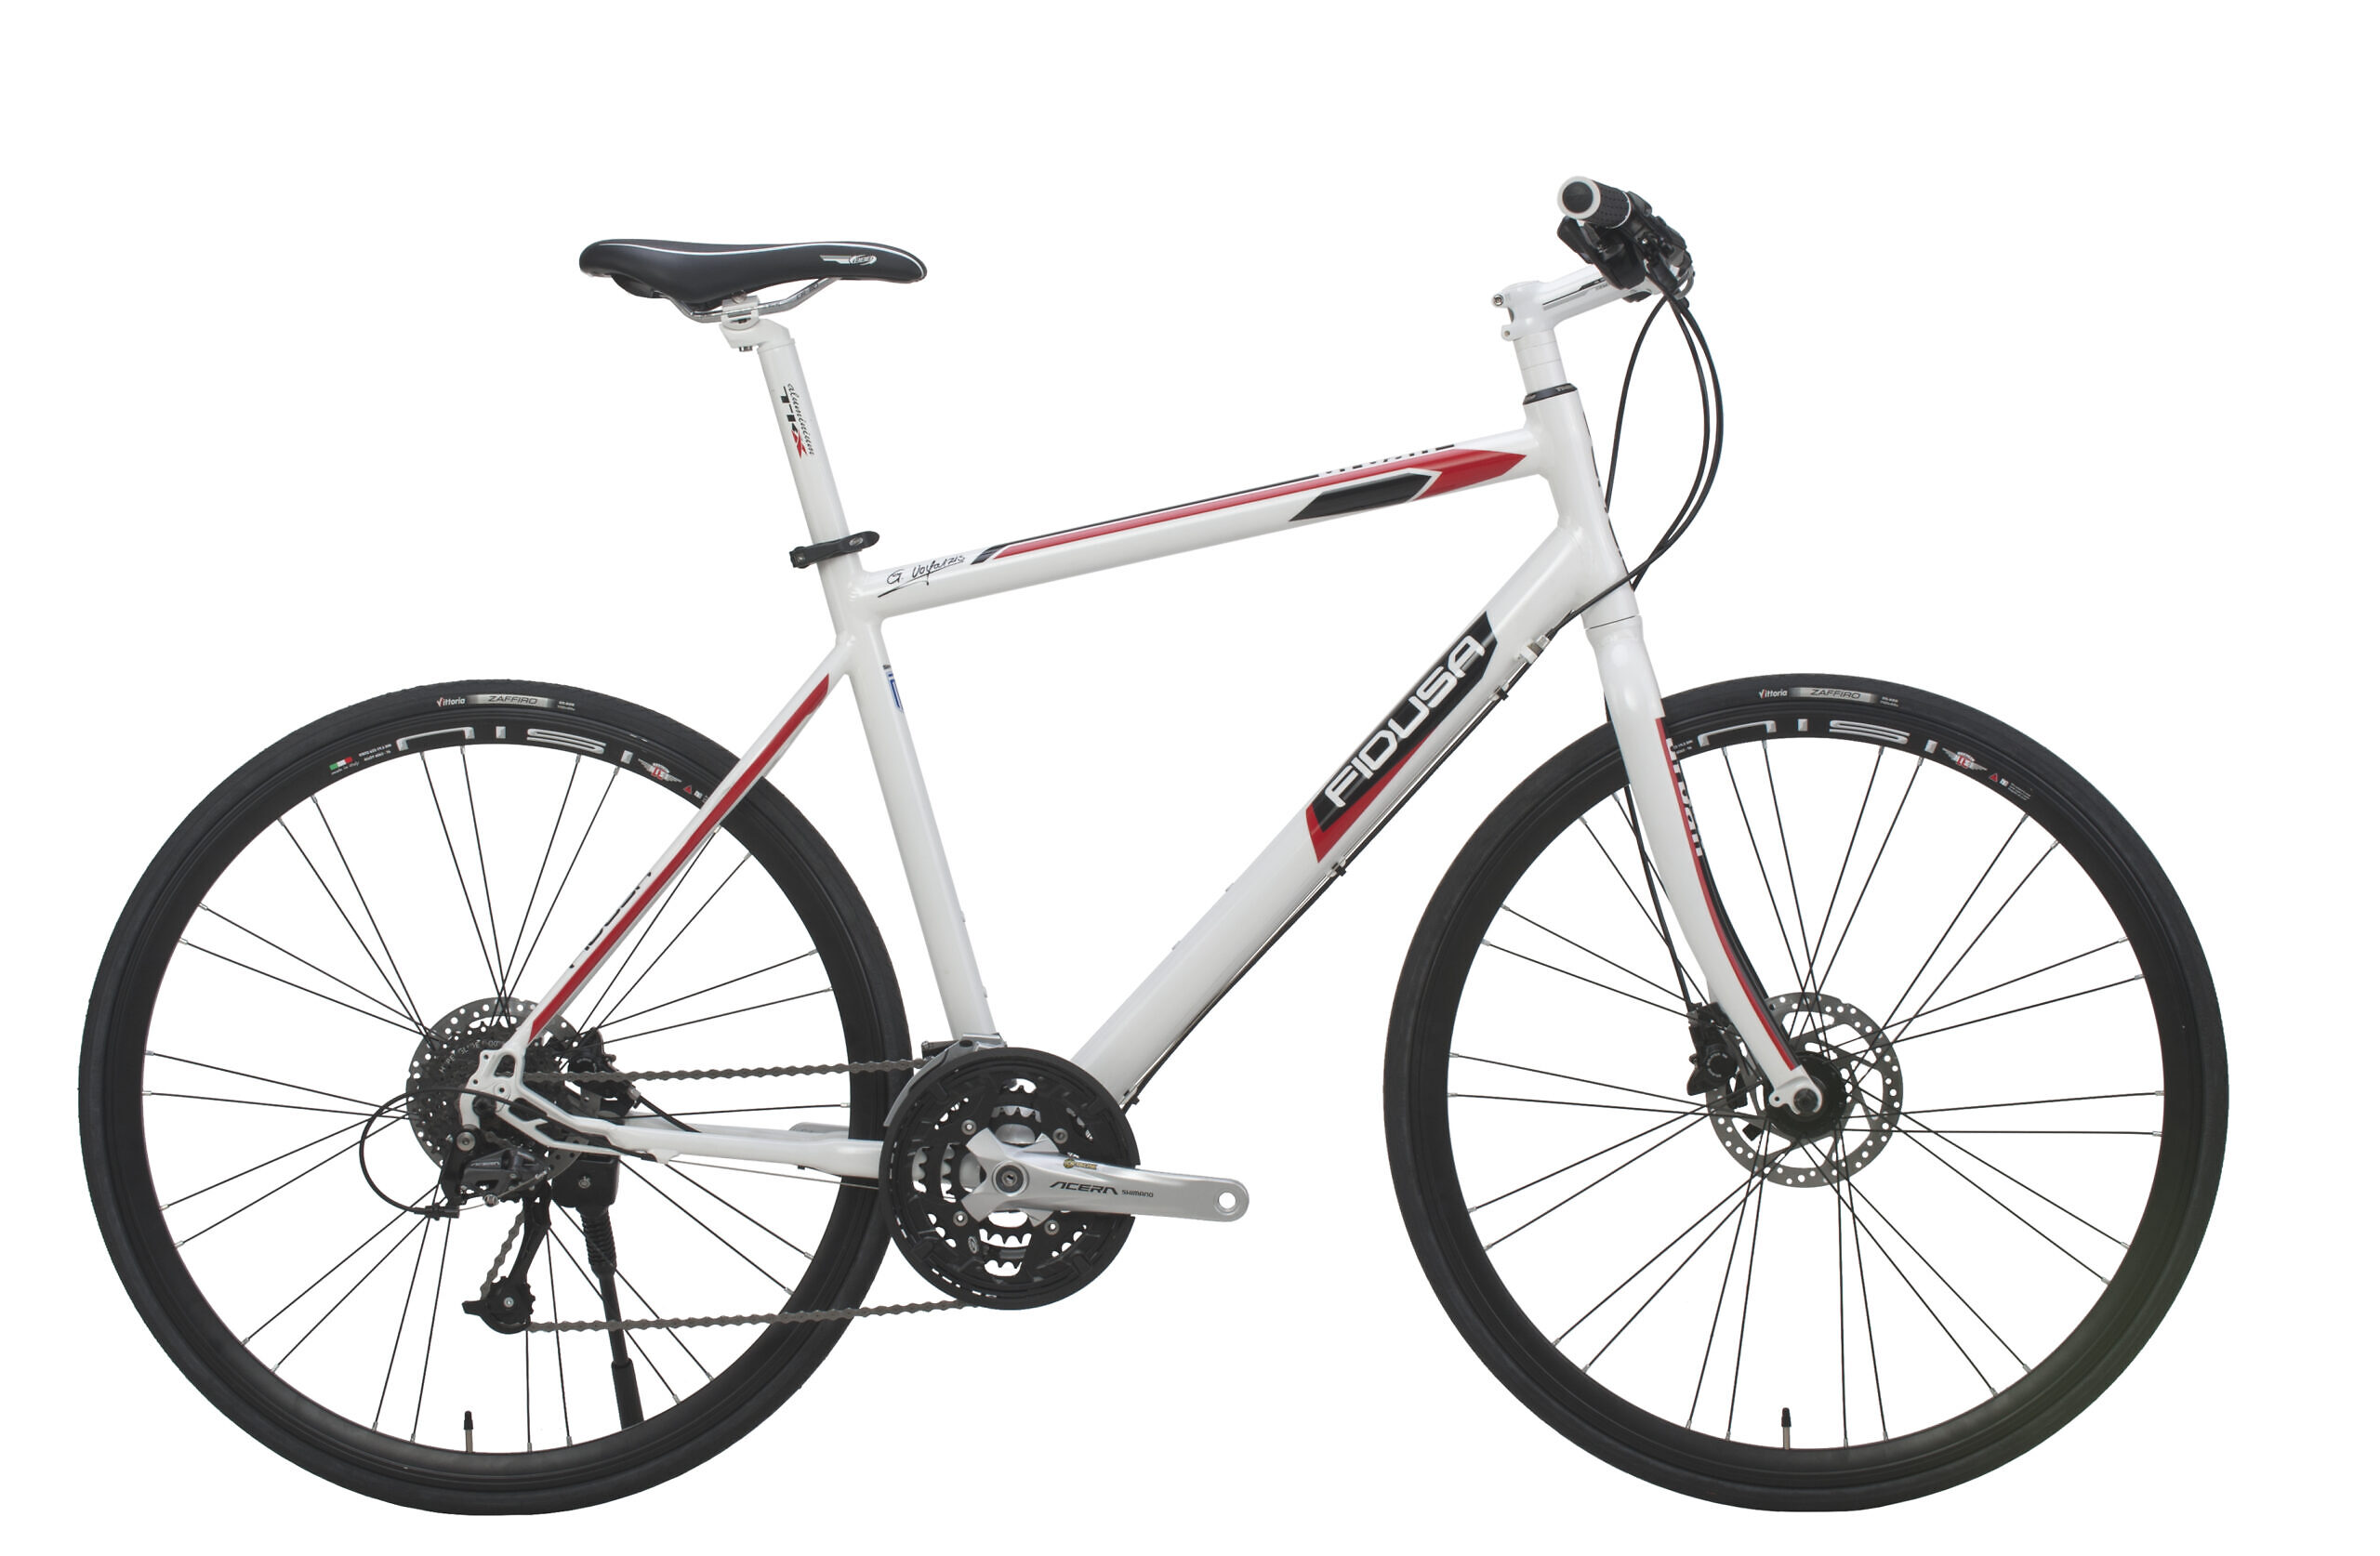 URBAN-WHITE-2014-BIKE-Land-clear-scaled URBAN Sport-Fitness Bike